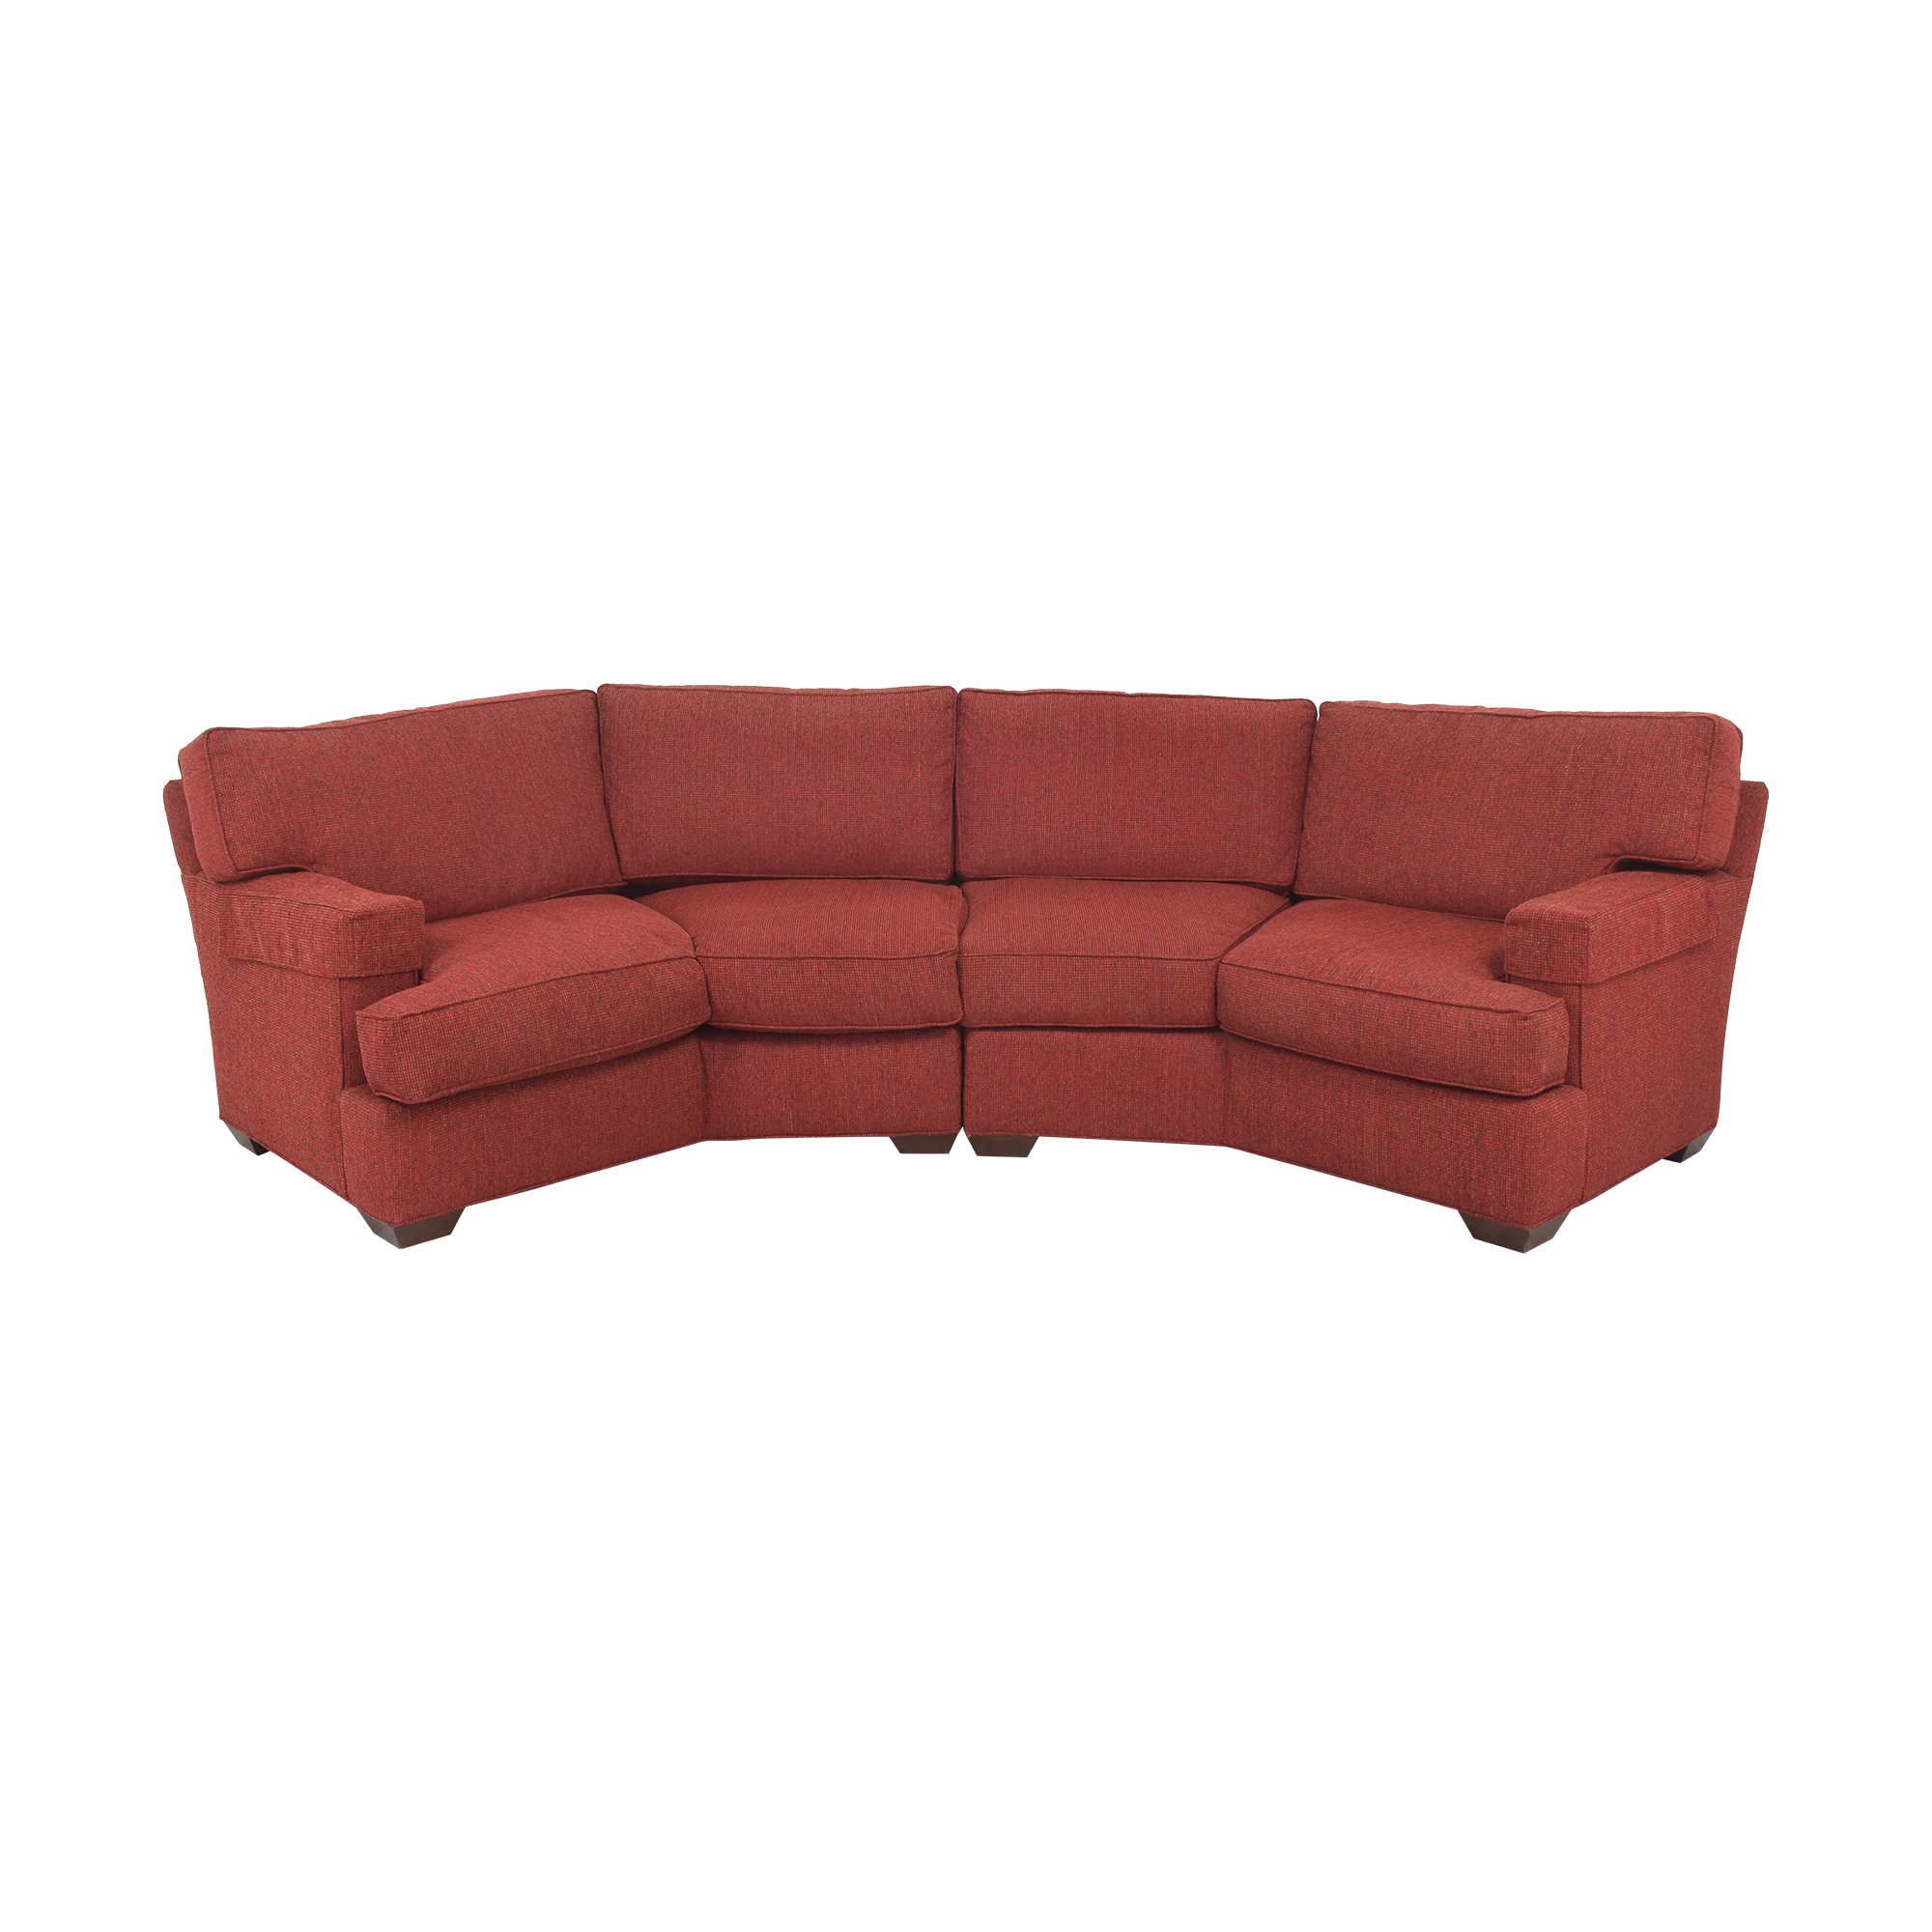 Pearson Personal Choice Four Piece Sectional Sofa Pearson